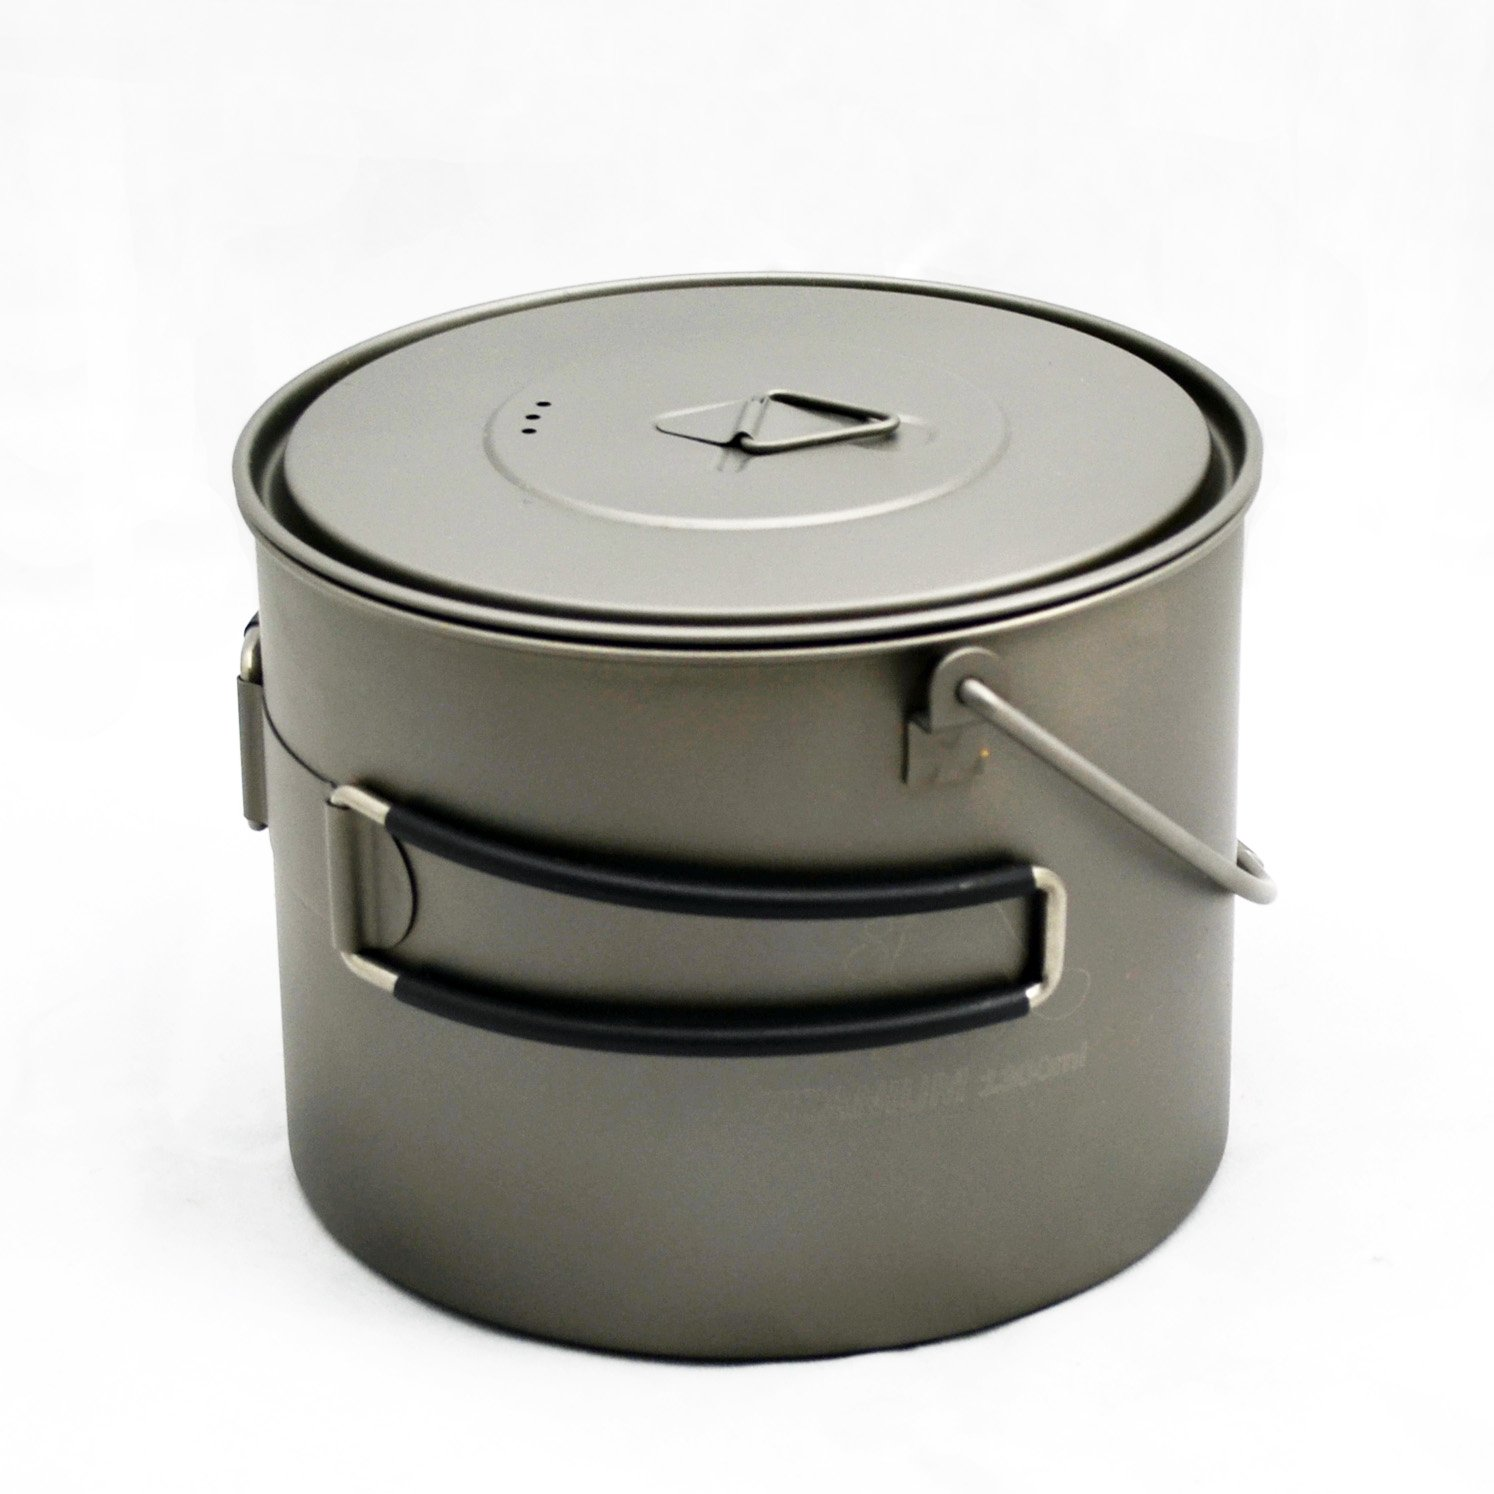 TOAKS Titanium 1300ml Pot with Bail Handle by TOAKS